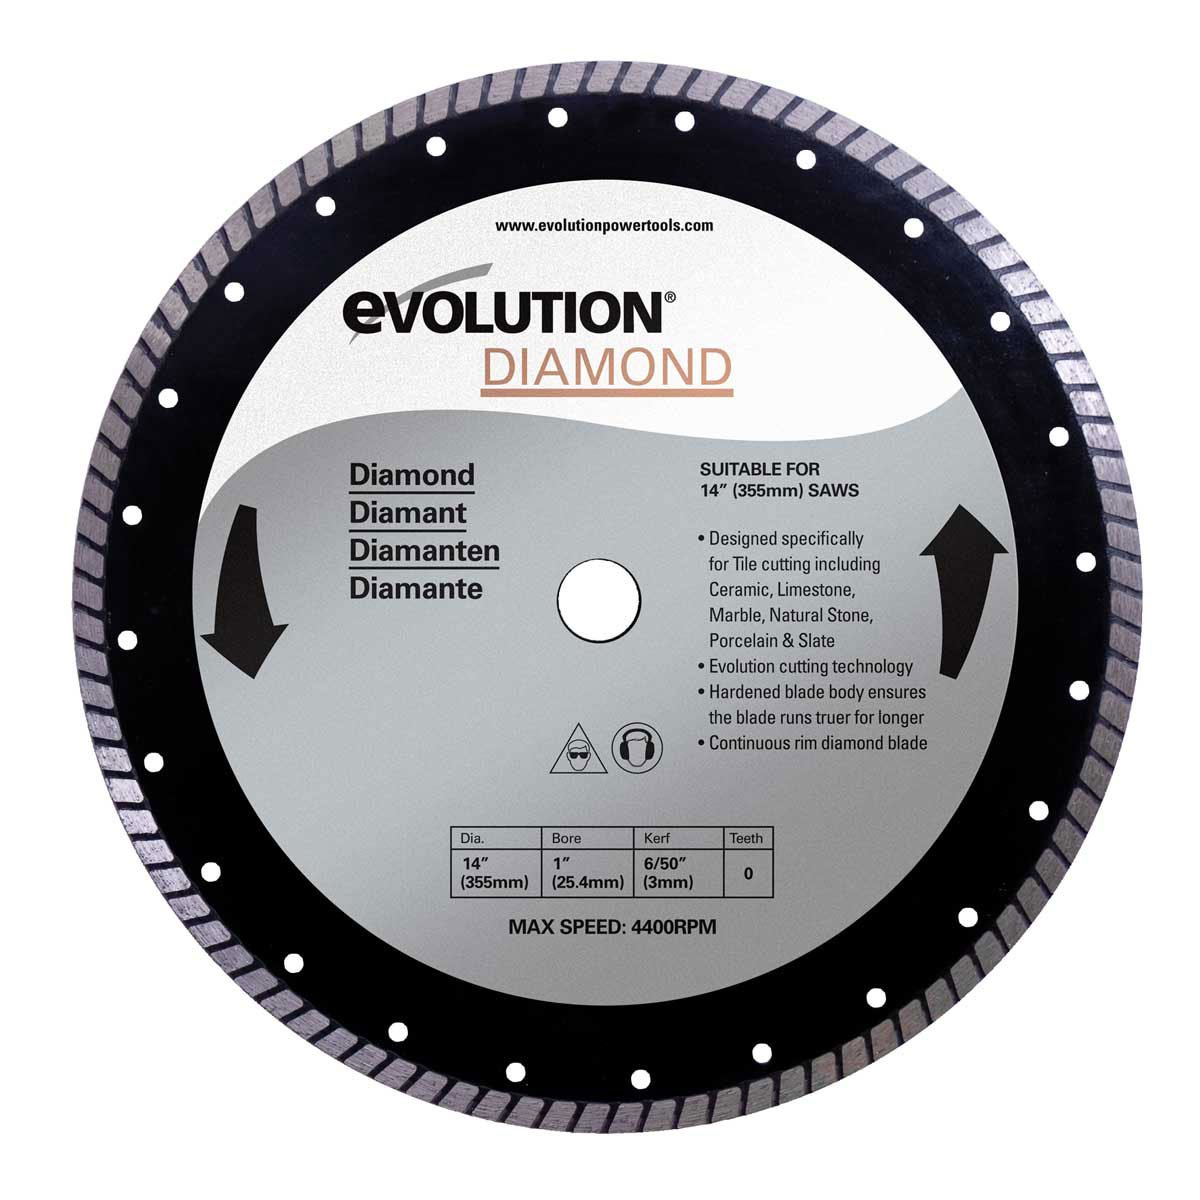 Evolution diamond blade 355 mm amazon diy tools keyboard keysfo Image collections